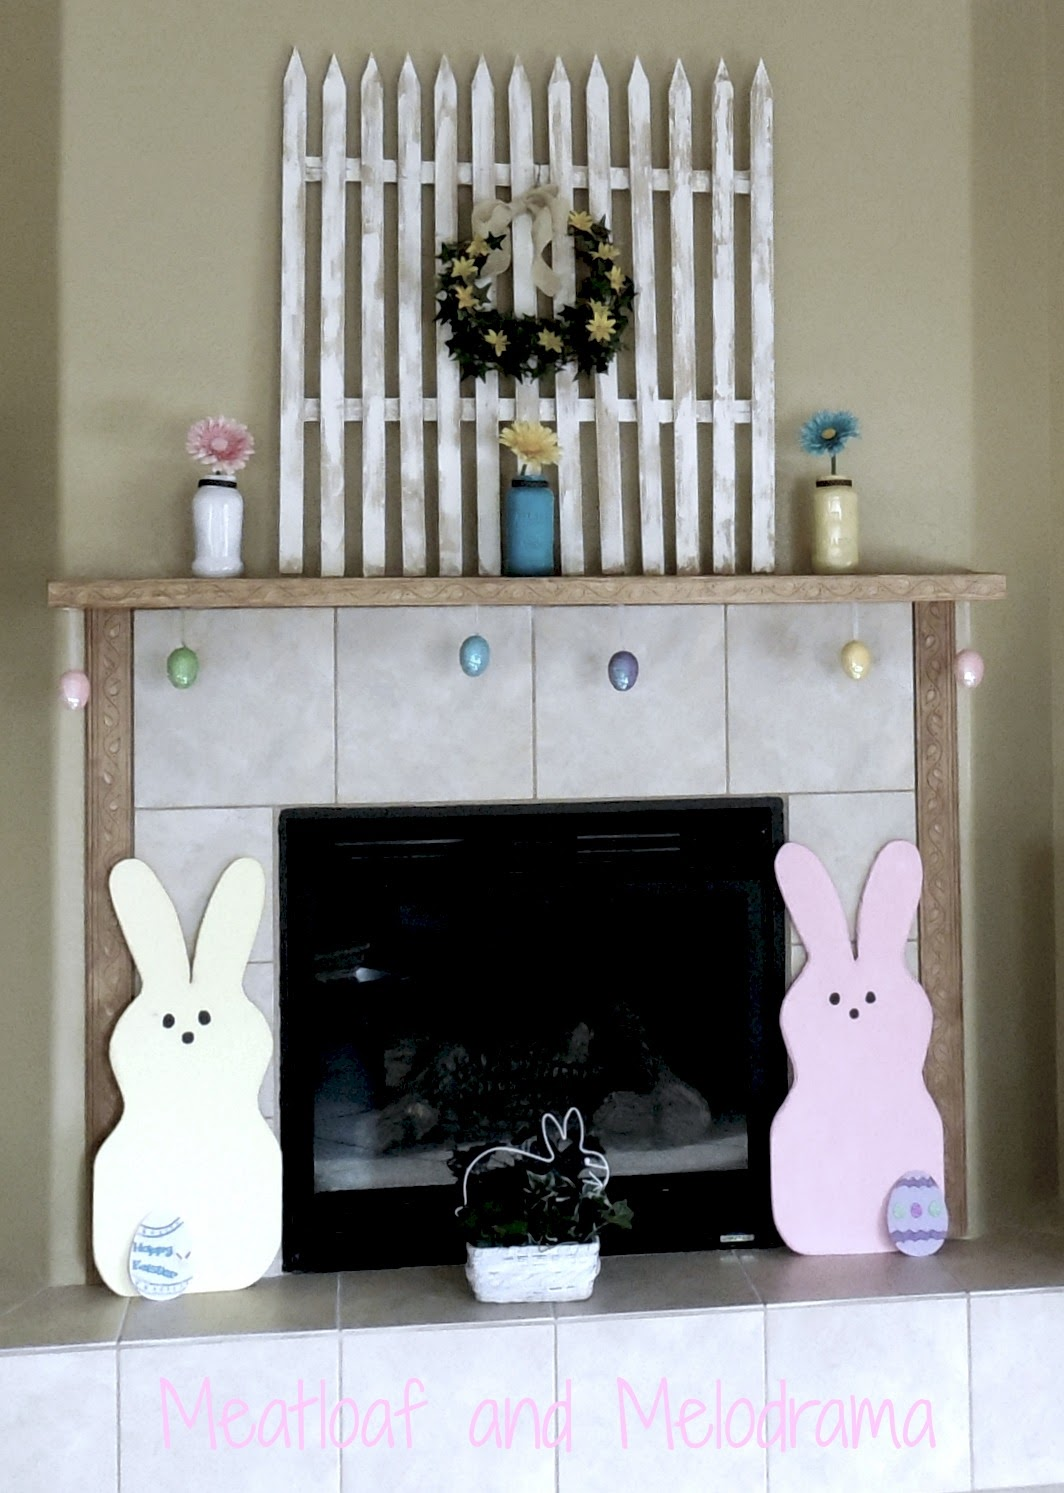 peeps bunnies, flowers, picket fence on spring mantel